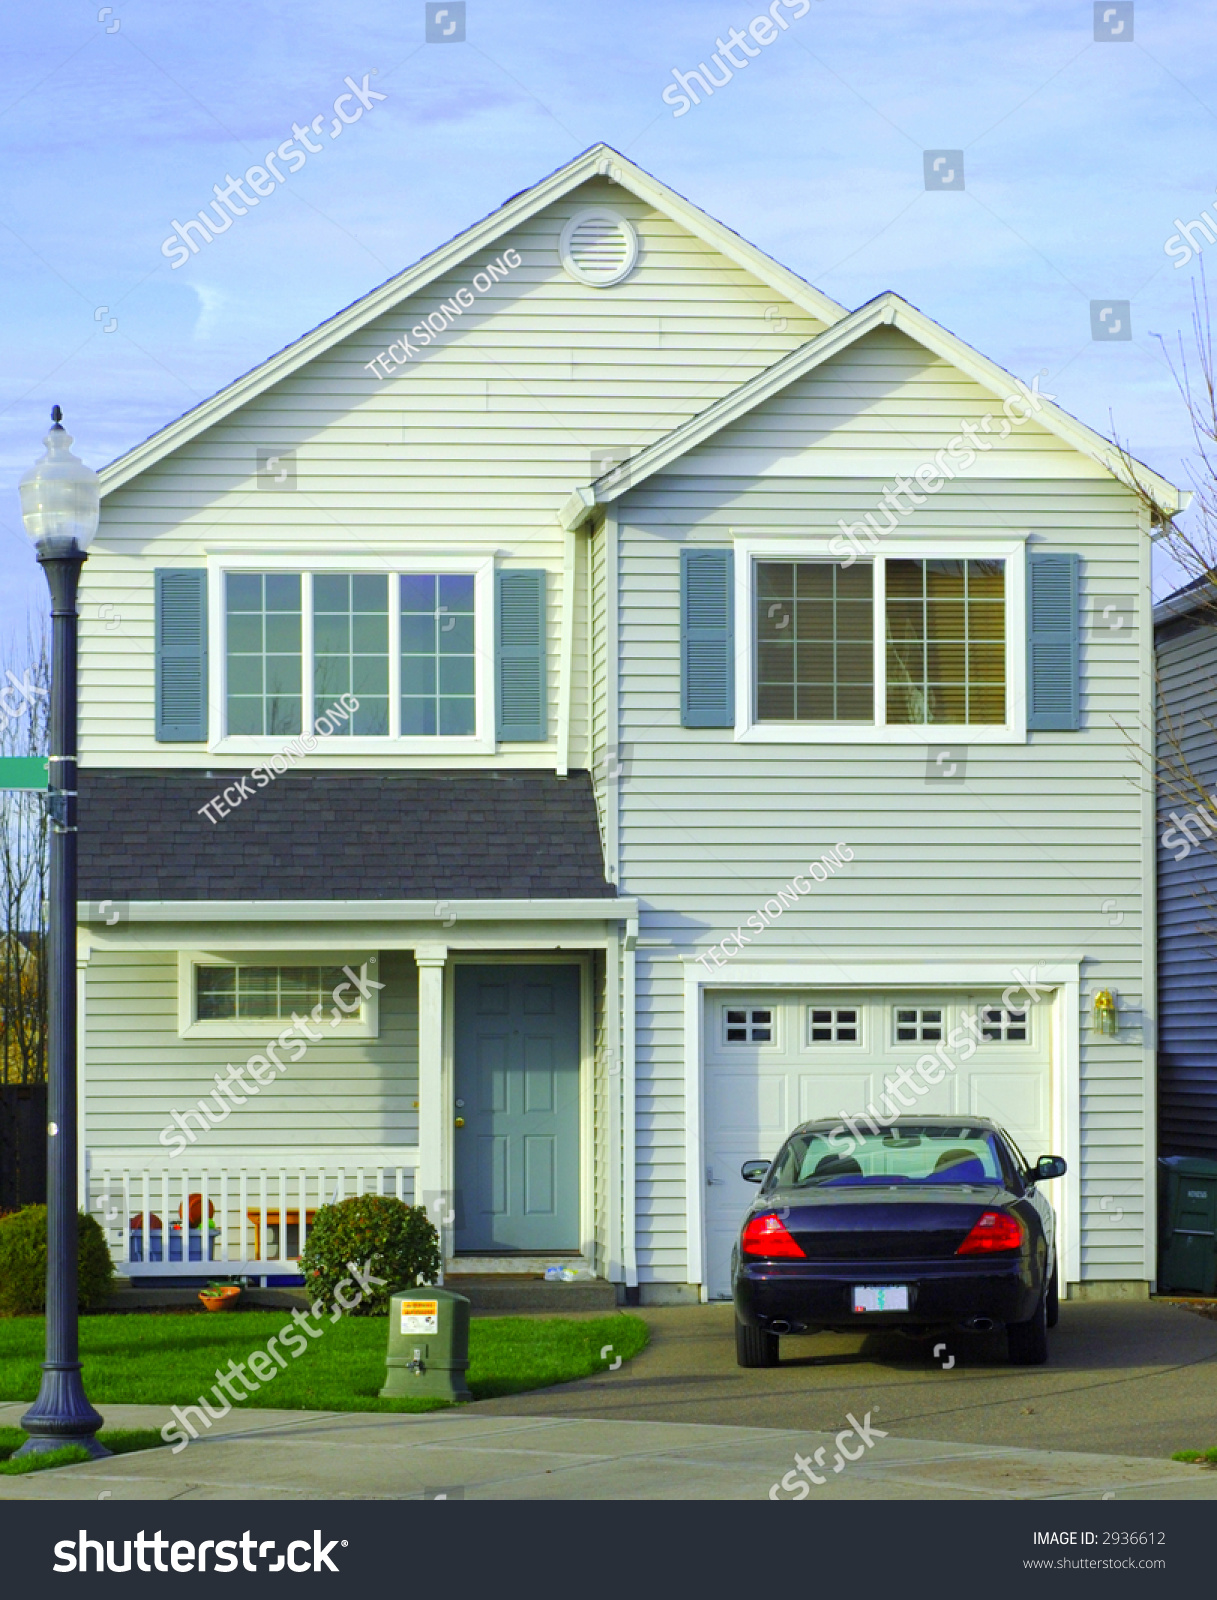 Front view house car parking front stock photo 2936612 for Garage in front of house